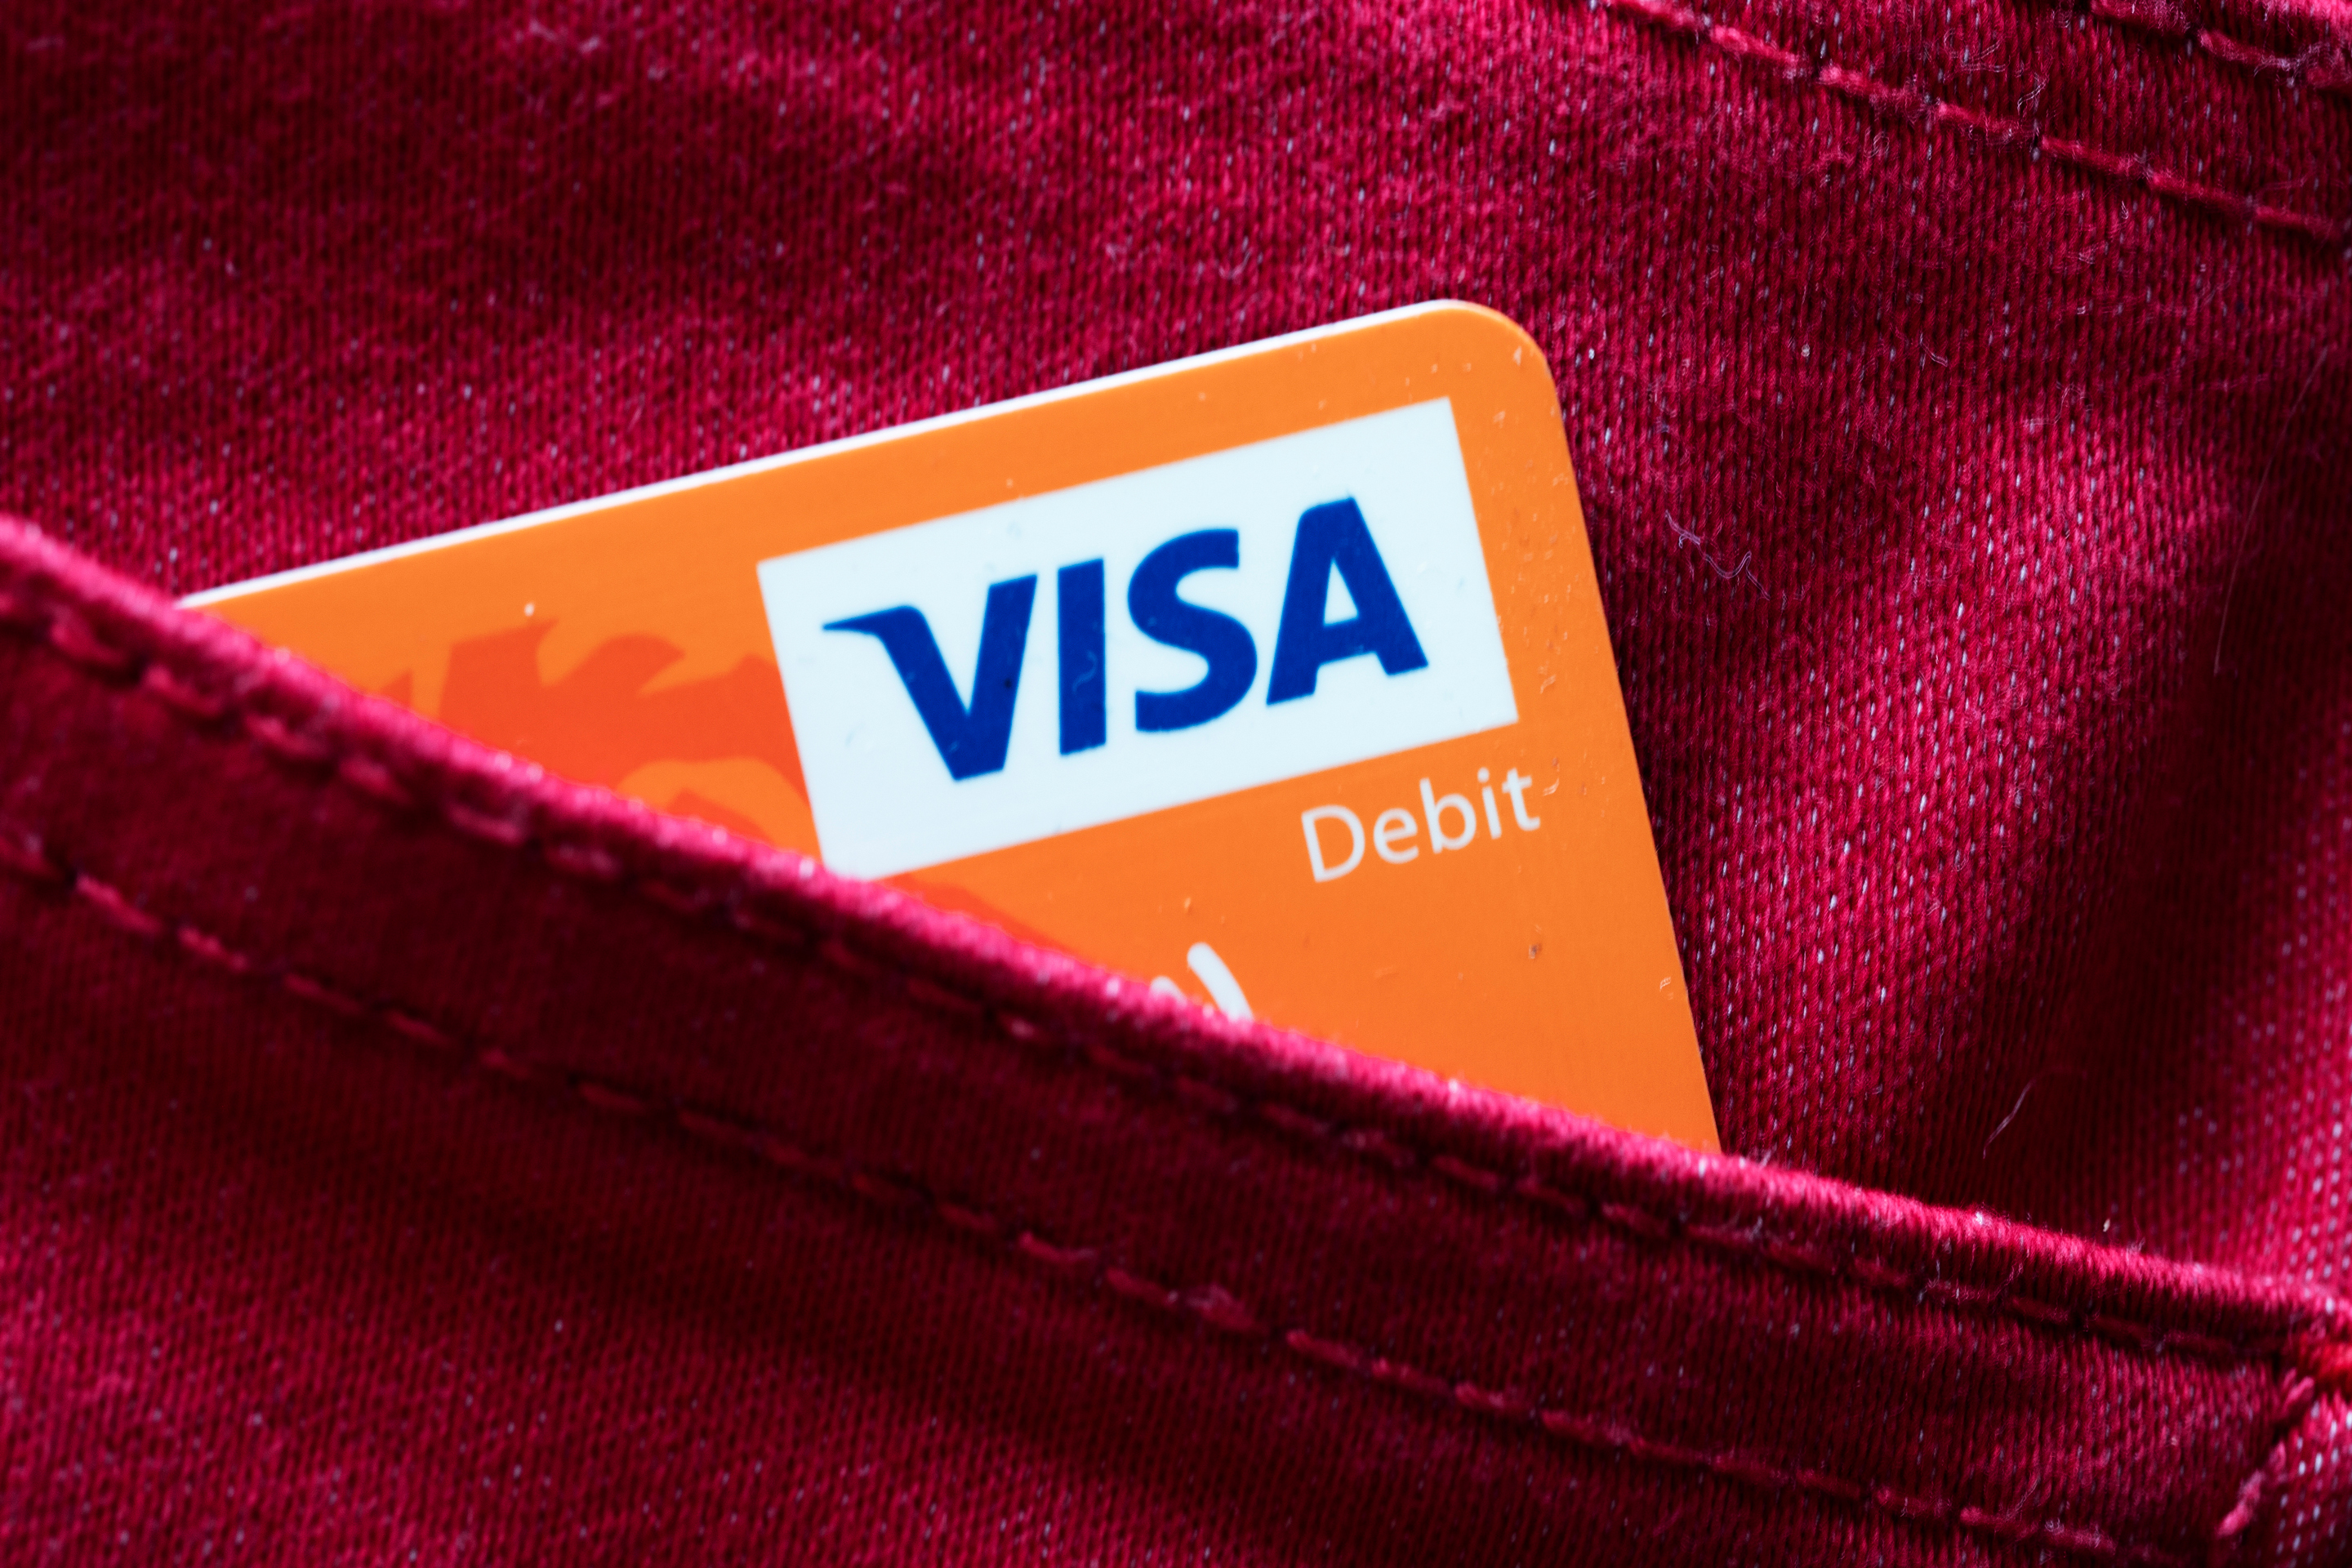 Visa's CEO on COVID-19's effects: 'We're doing very little hiring right now' thumbnail